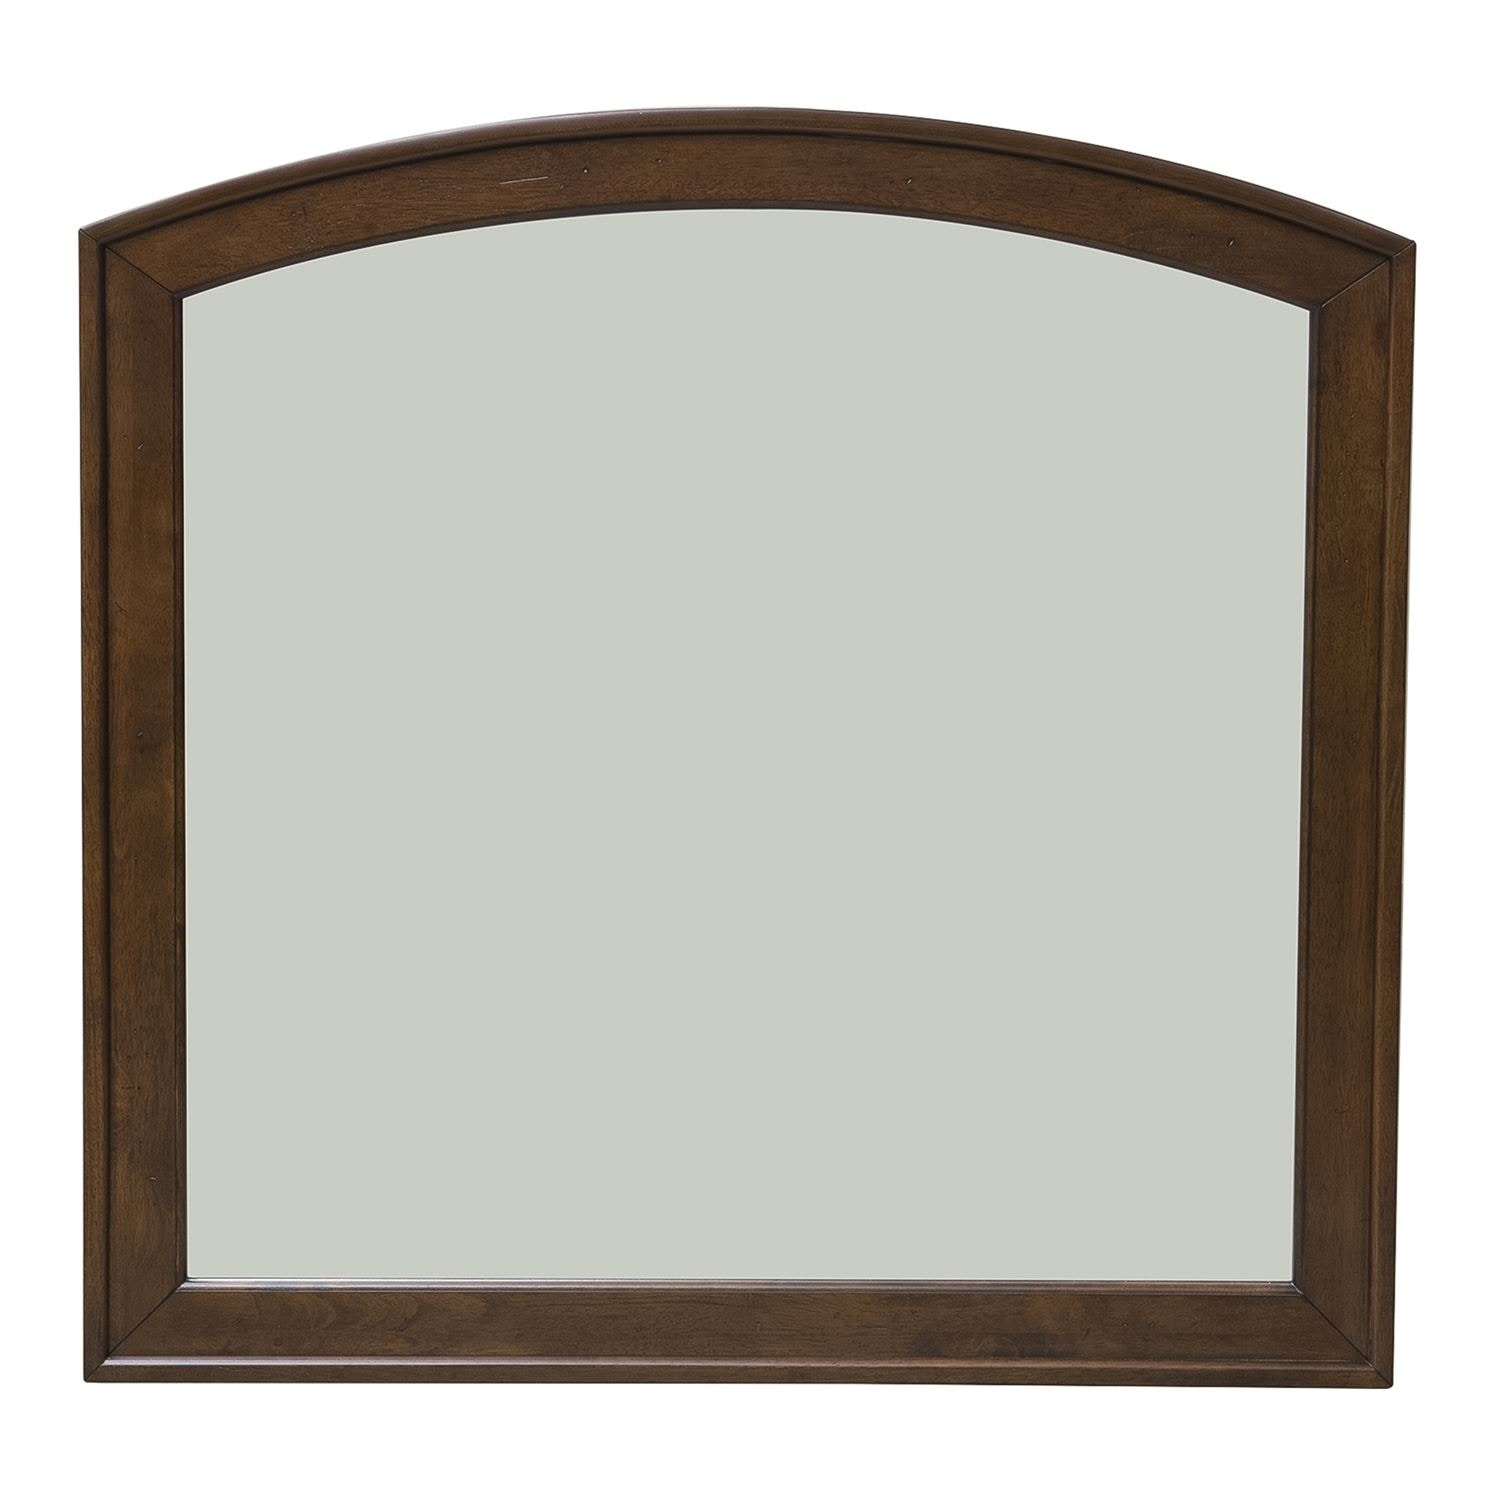 Liberty Furniture Accessories Arched Mirror 705 BR51 At Smith Village Home  Furniture